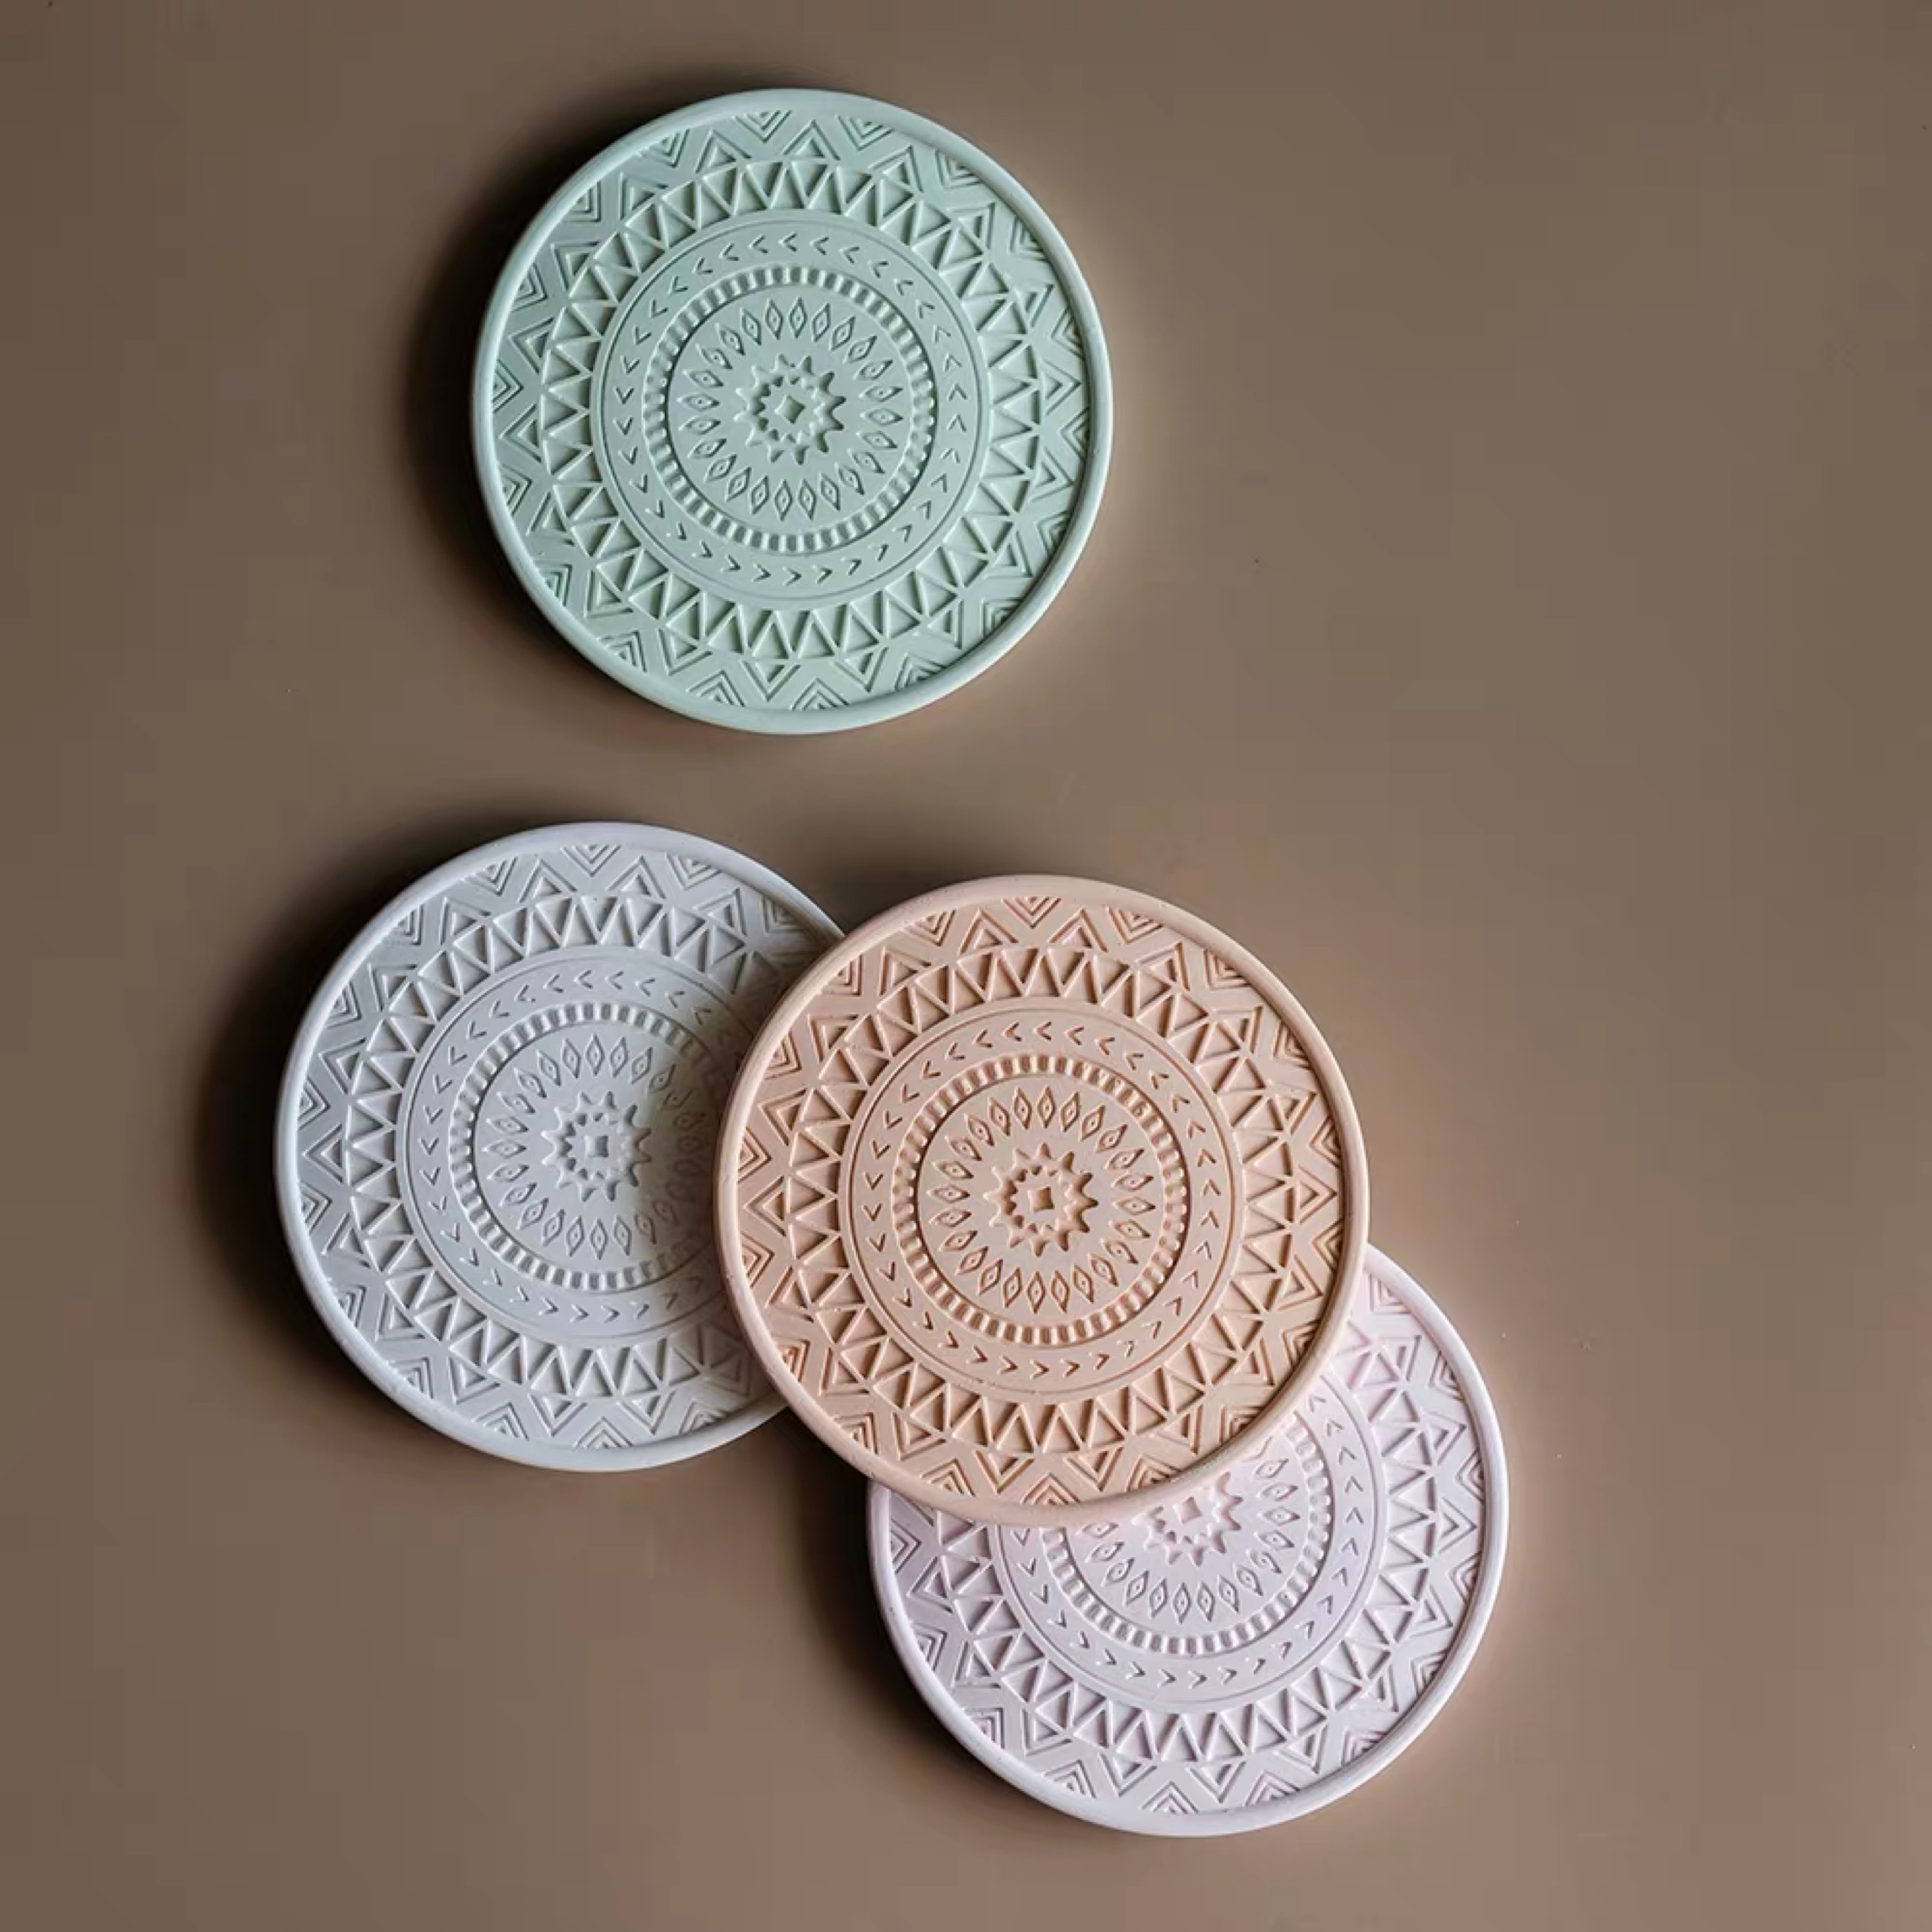 Japanese Embossed Pattern Coaster Silicone Mold Molds For Plaster Diatomite Insulation Placemat Mug Mat Concrete Clay Mold